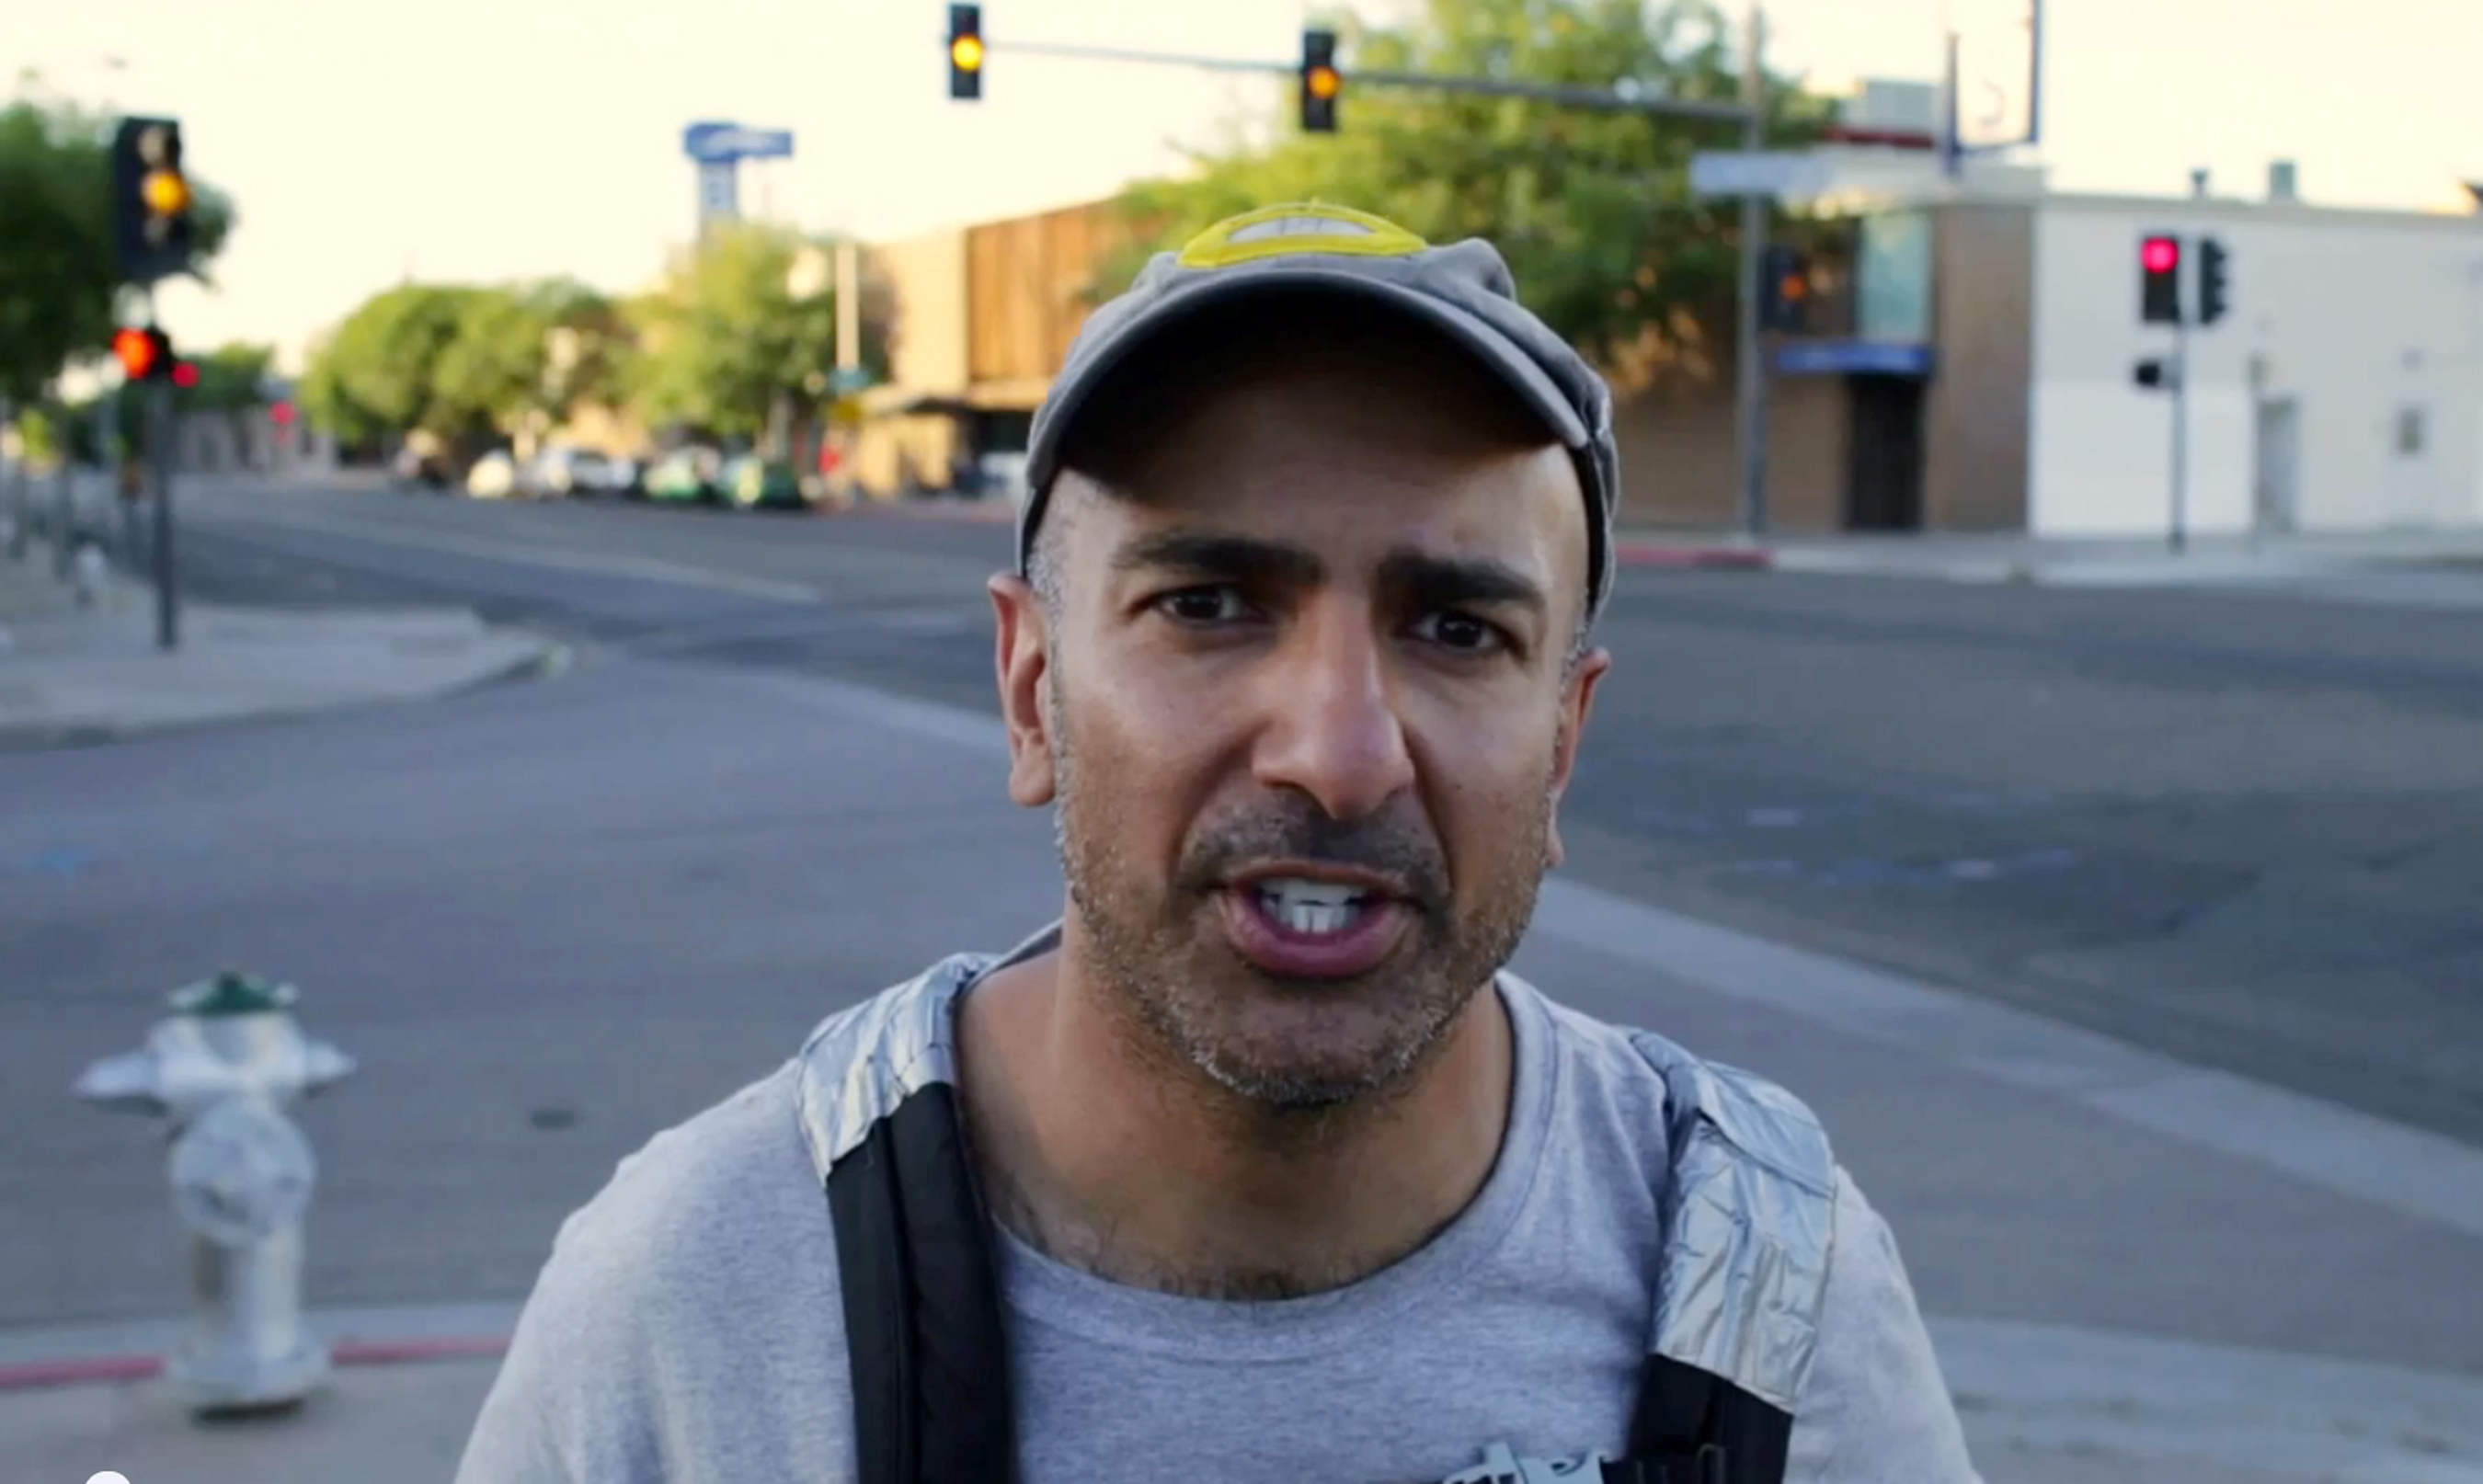 Neel Kashkari, the Republican candidate for California governor, lived as a homeless person and marched in gay parade.